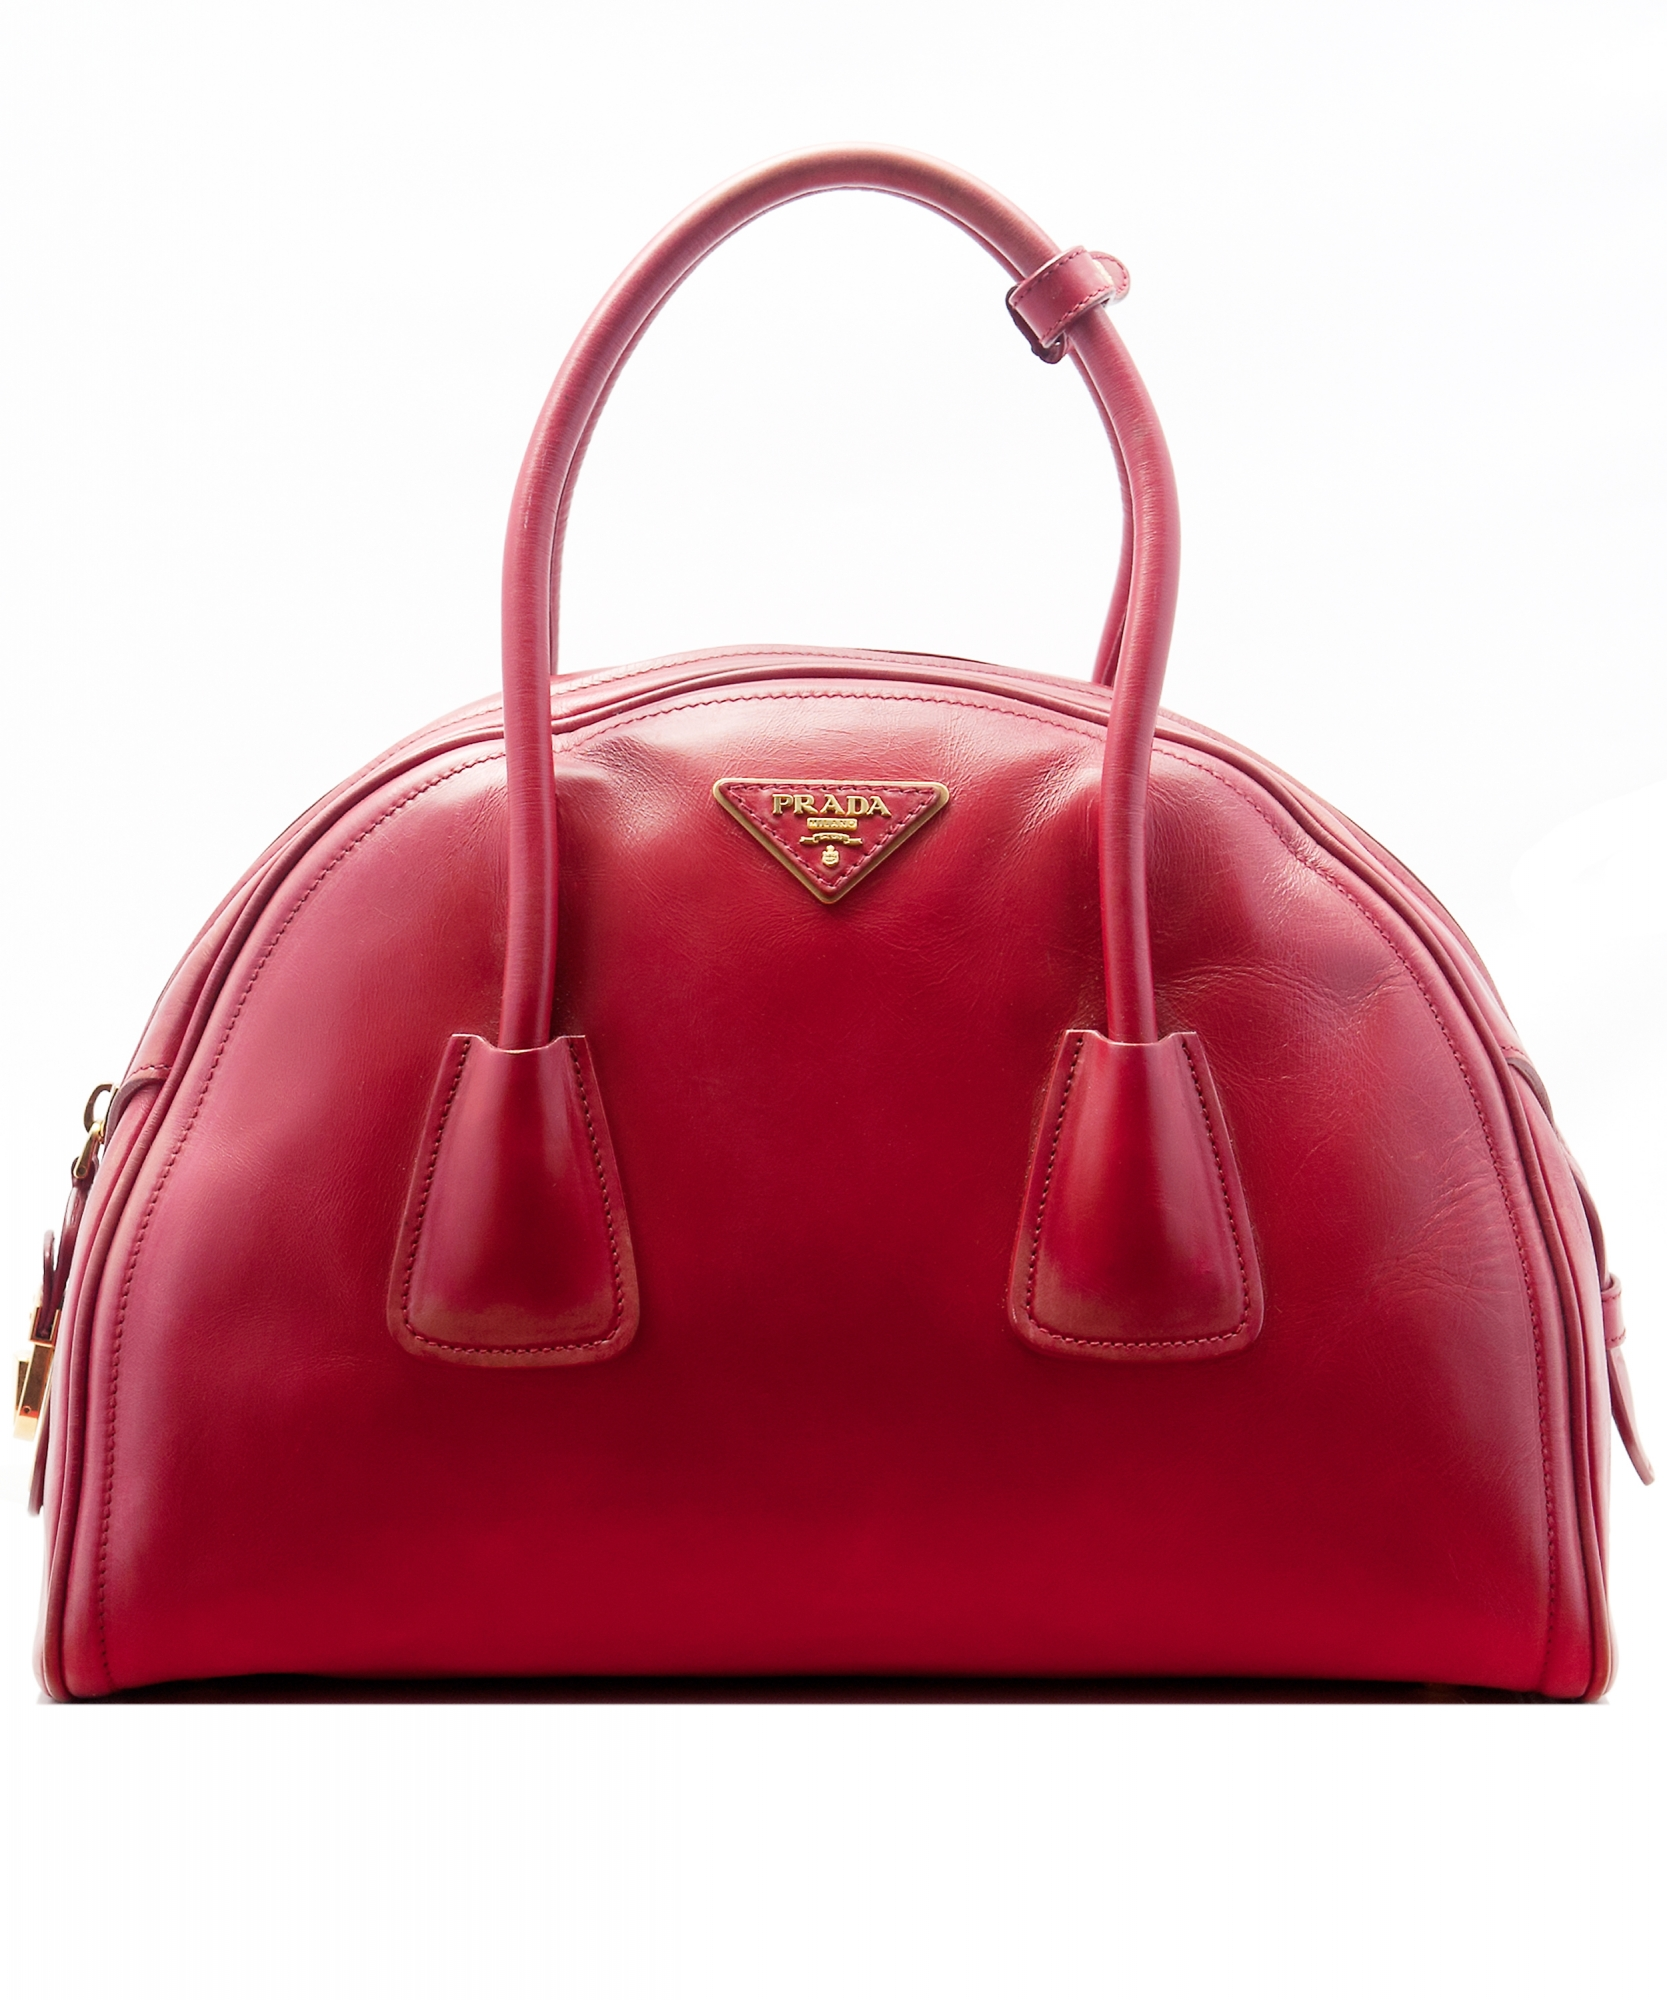 ee1fdf40fa0248 Tap to expand · Prada Red Leather Vitello Vintage Bowler Bag ...